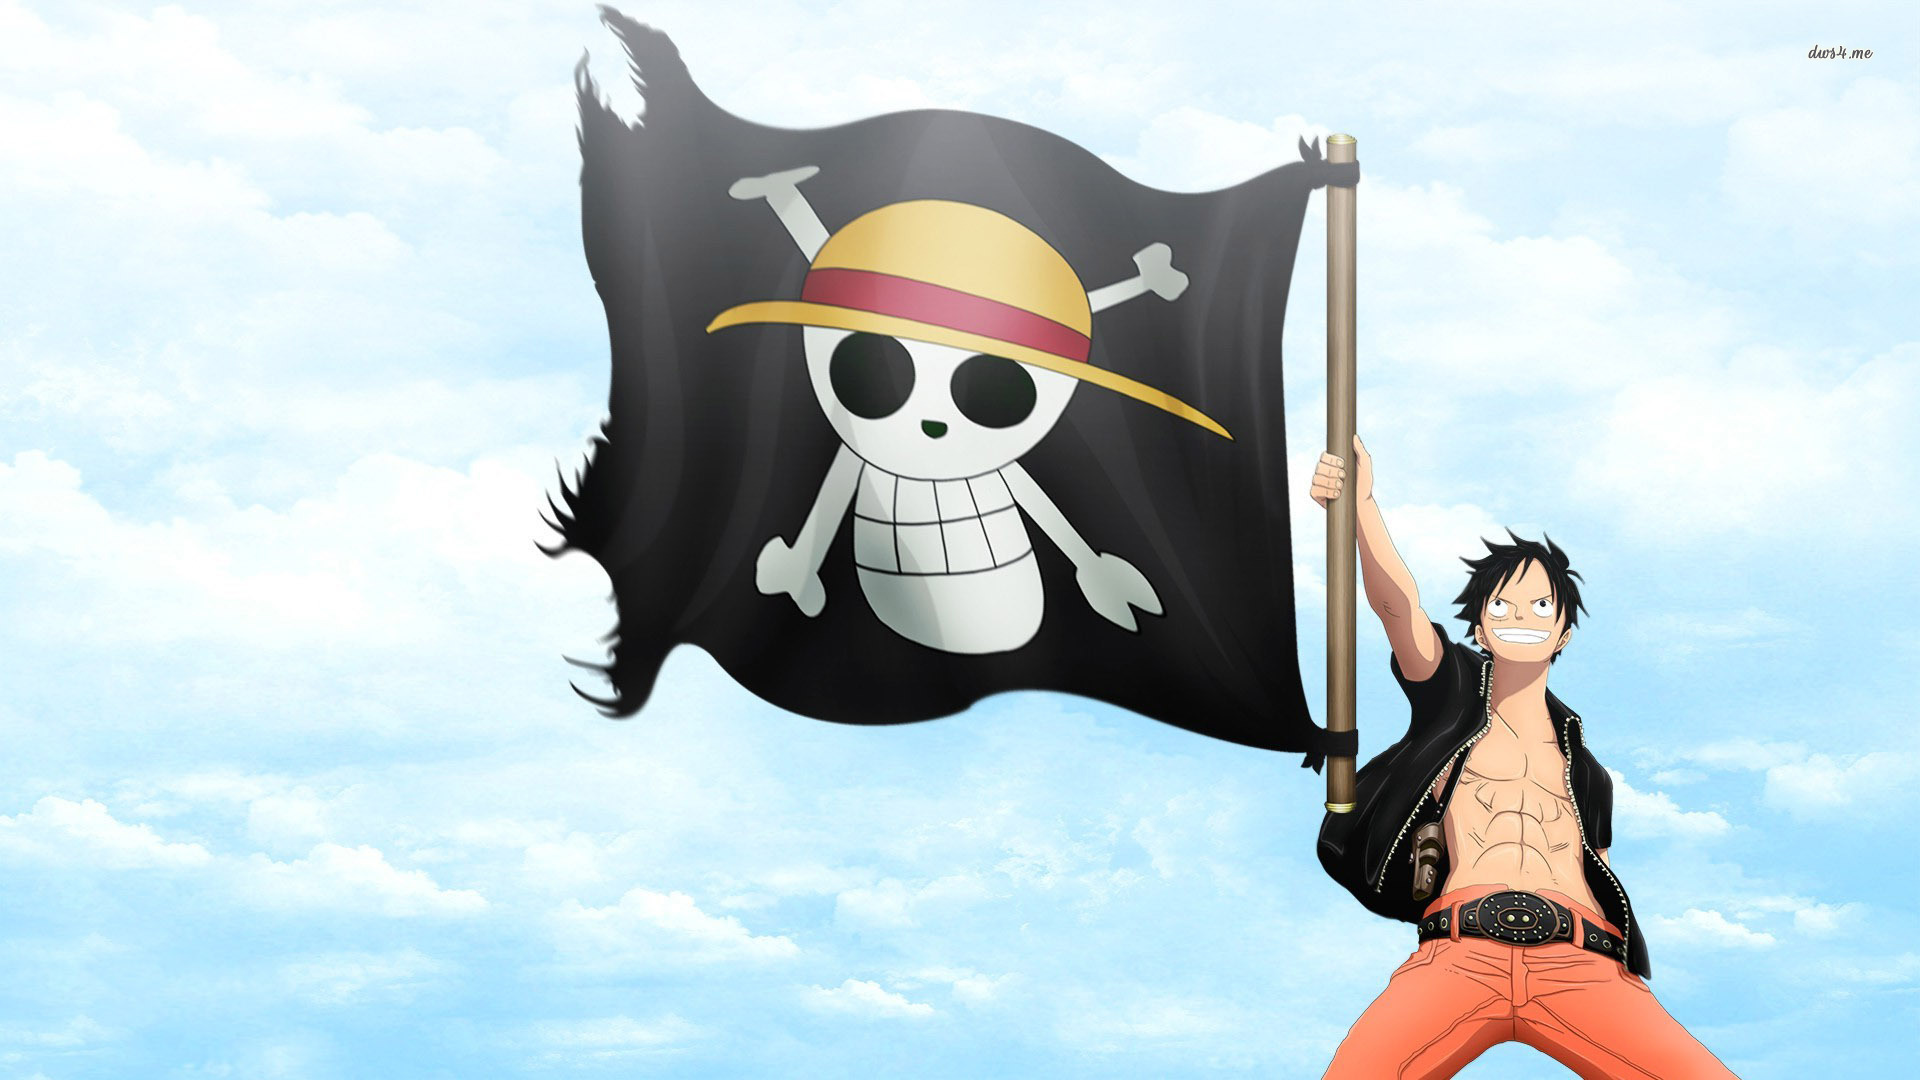 Luffy One Piece Photo HD wallpaper   Luffy One Piece Photo 1920x1080